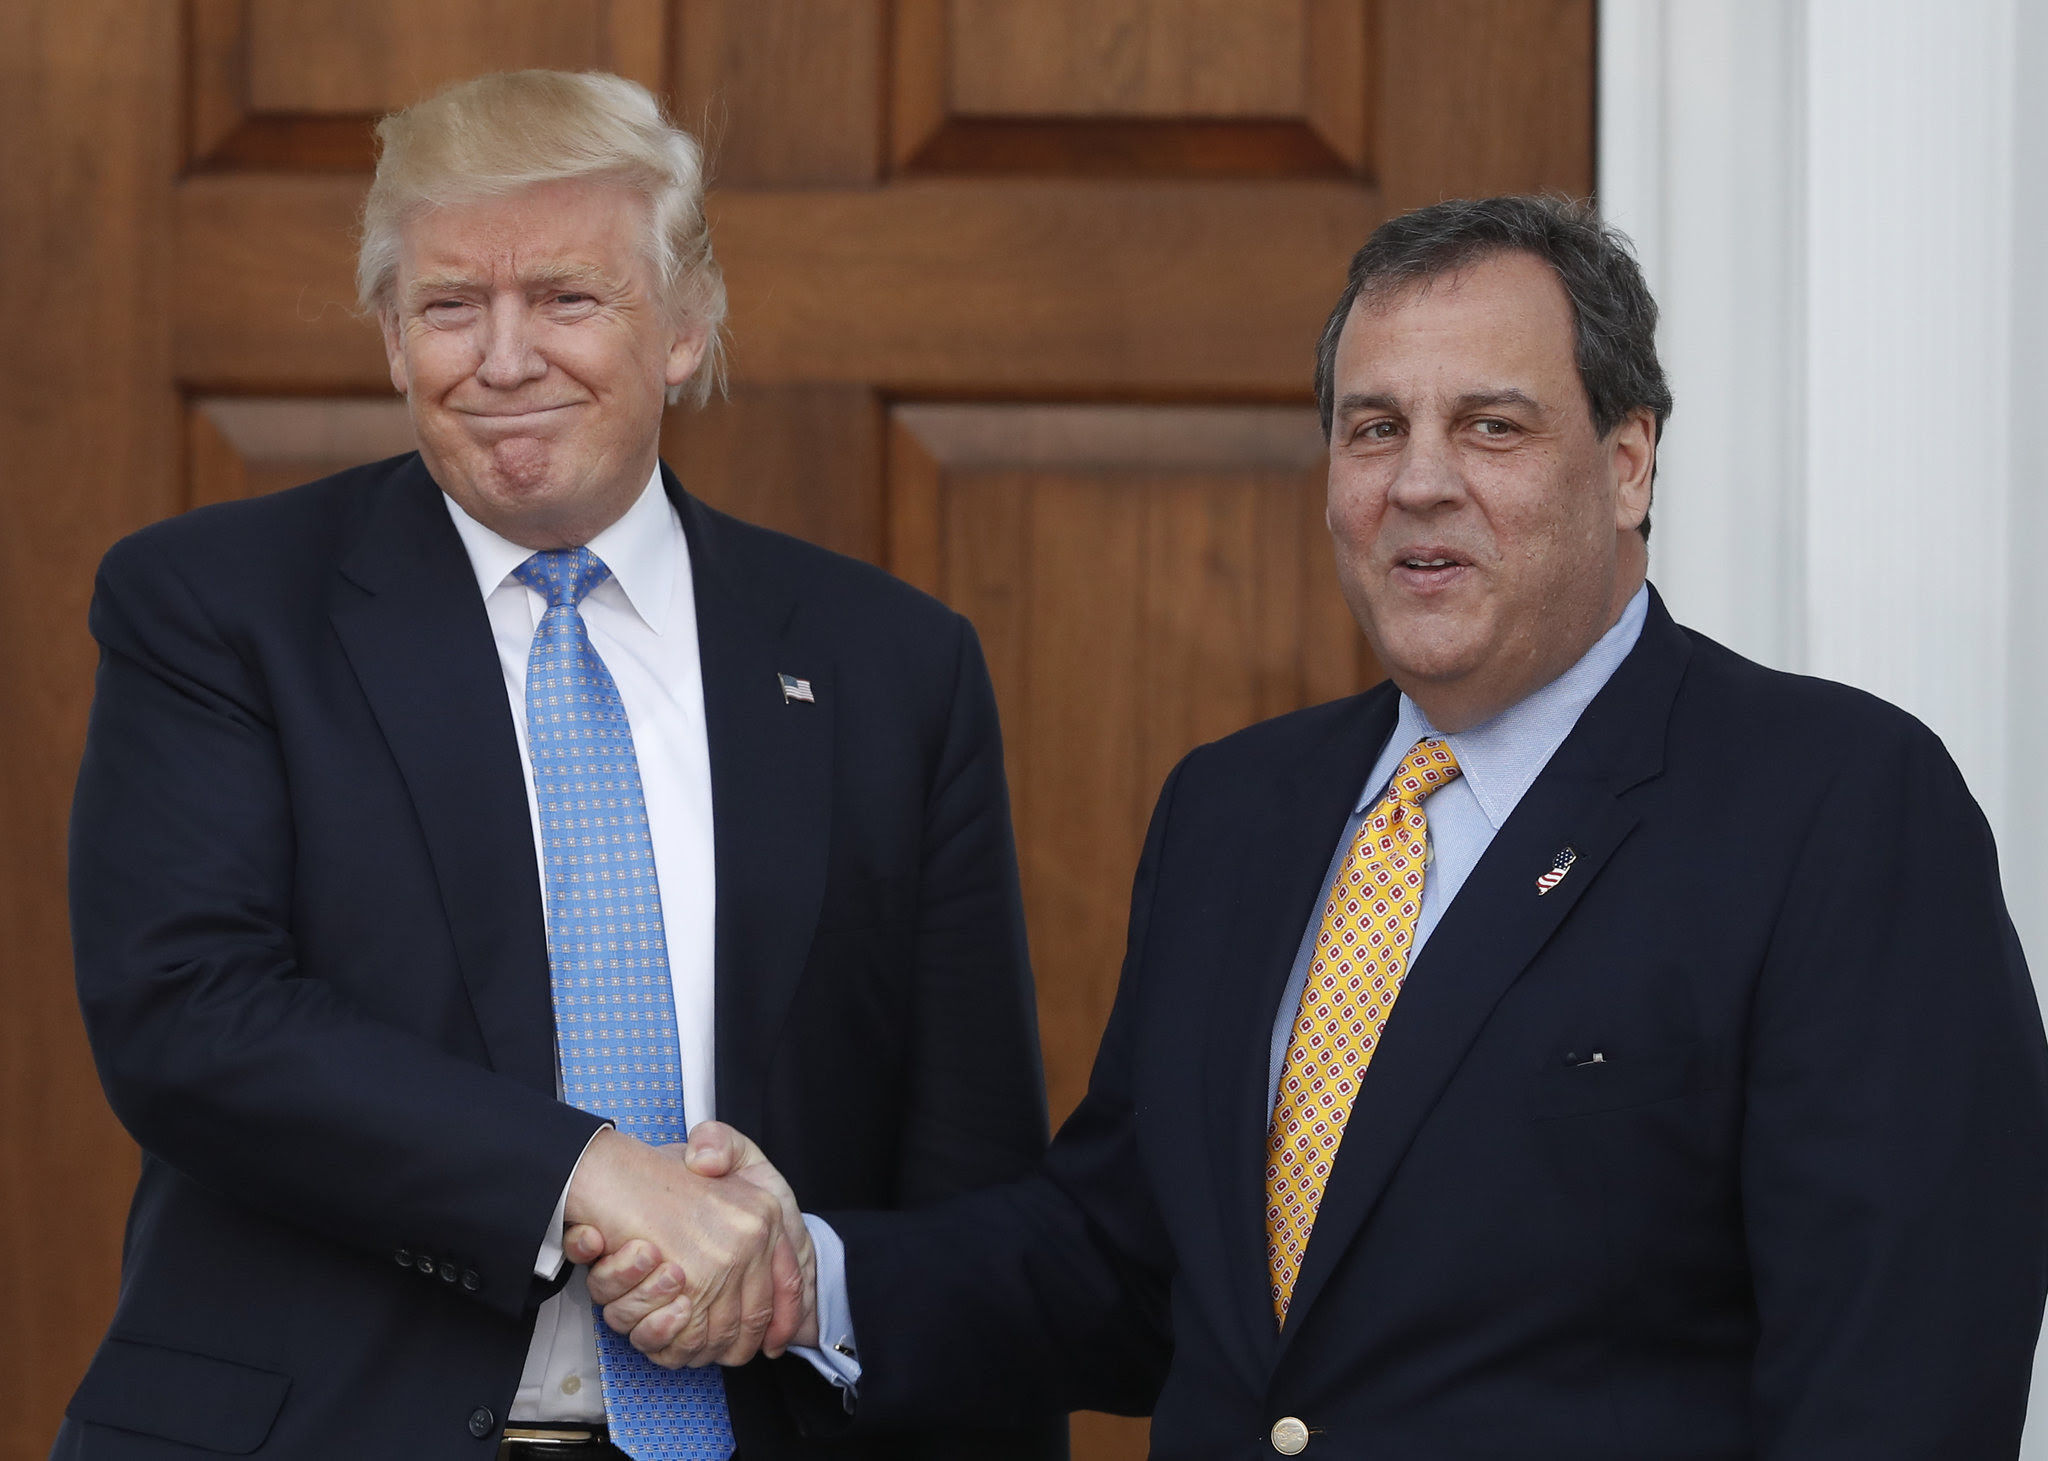 http://media.nj.com/politics_impact/photo/donald-trump-chris-christie-2586e427a389b57a.jpg